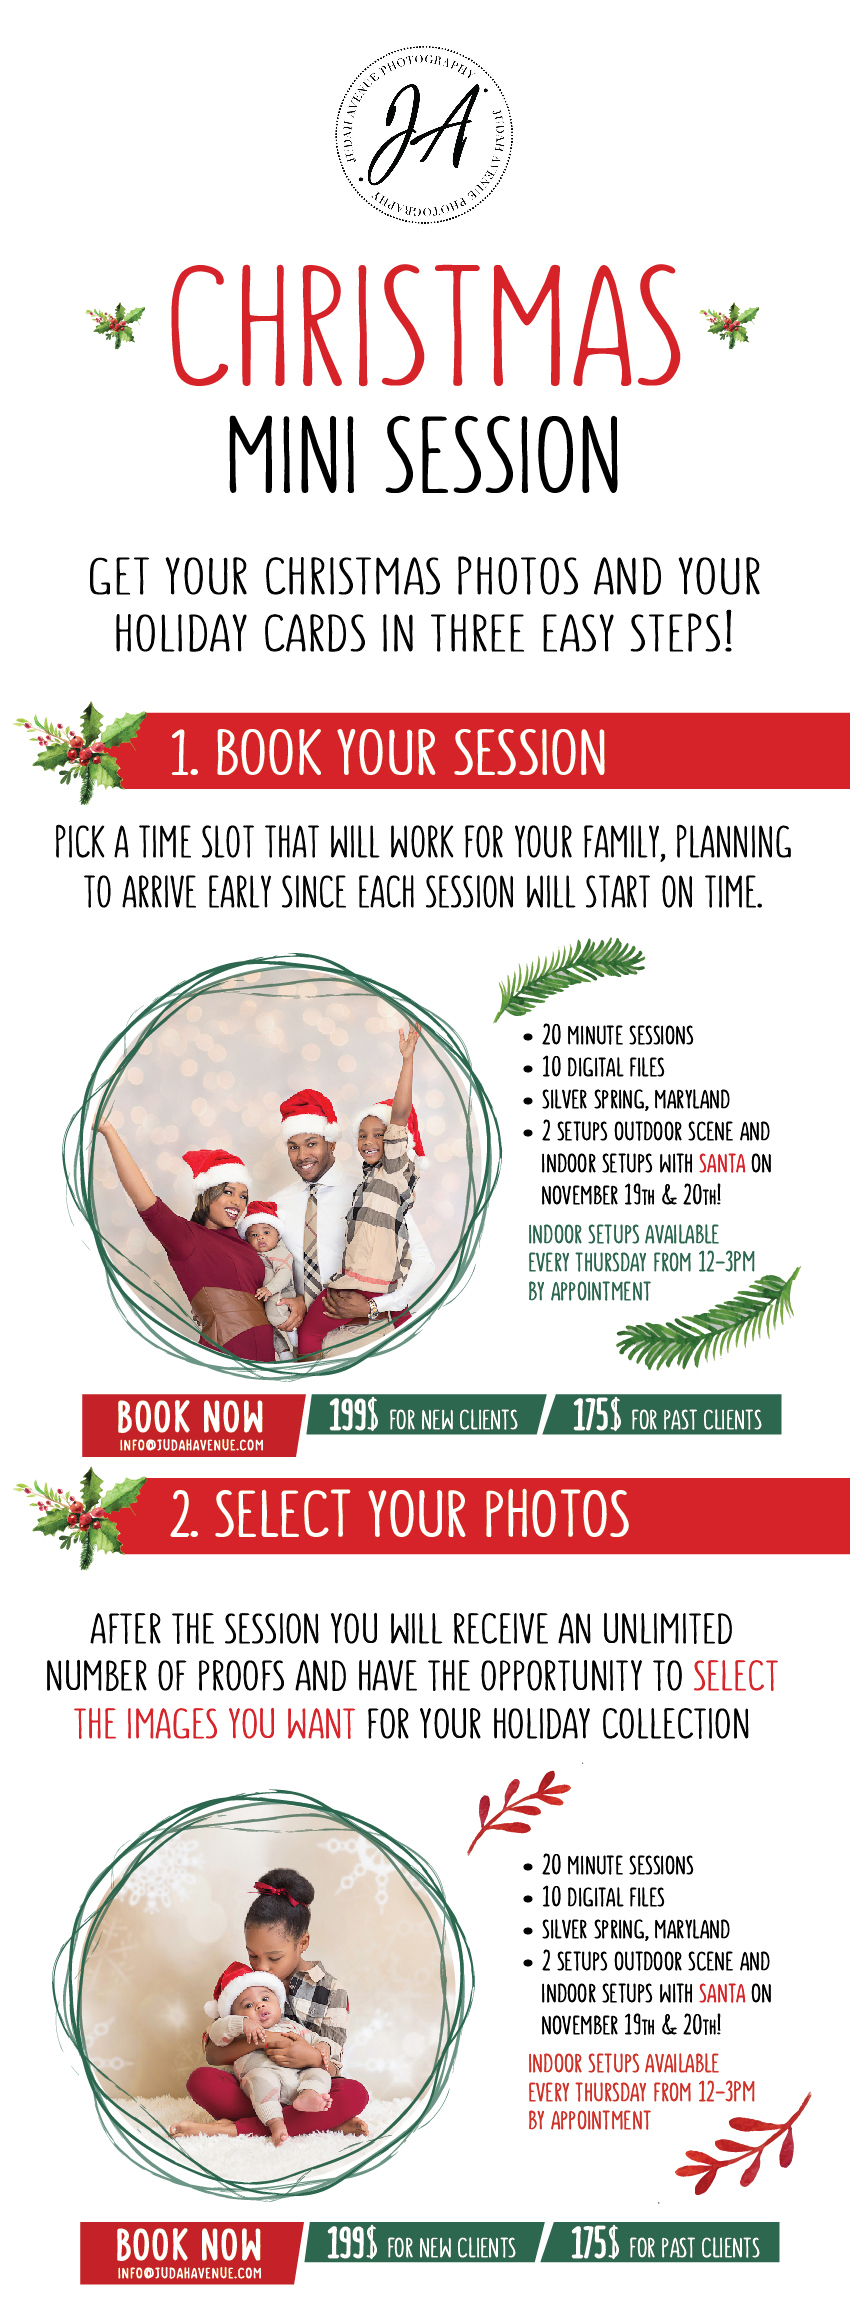 Christmas Mini Sessions are Back! Book Your Holiday Photos ...